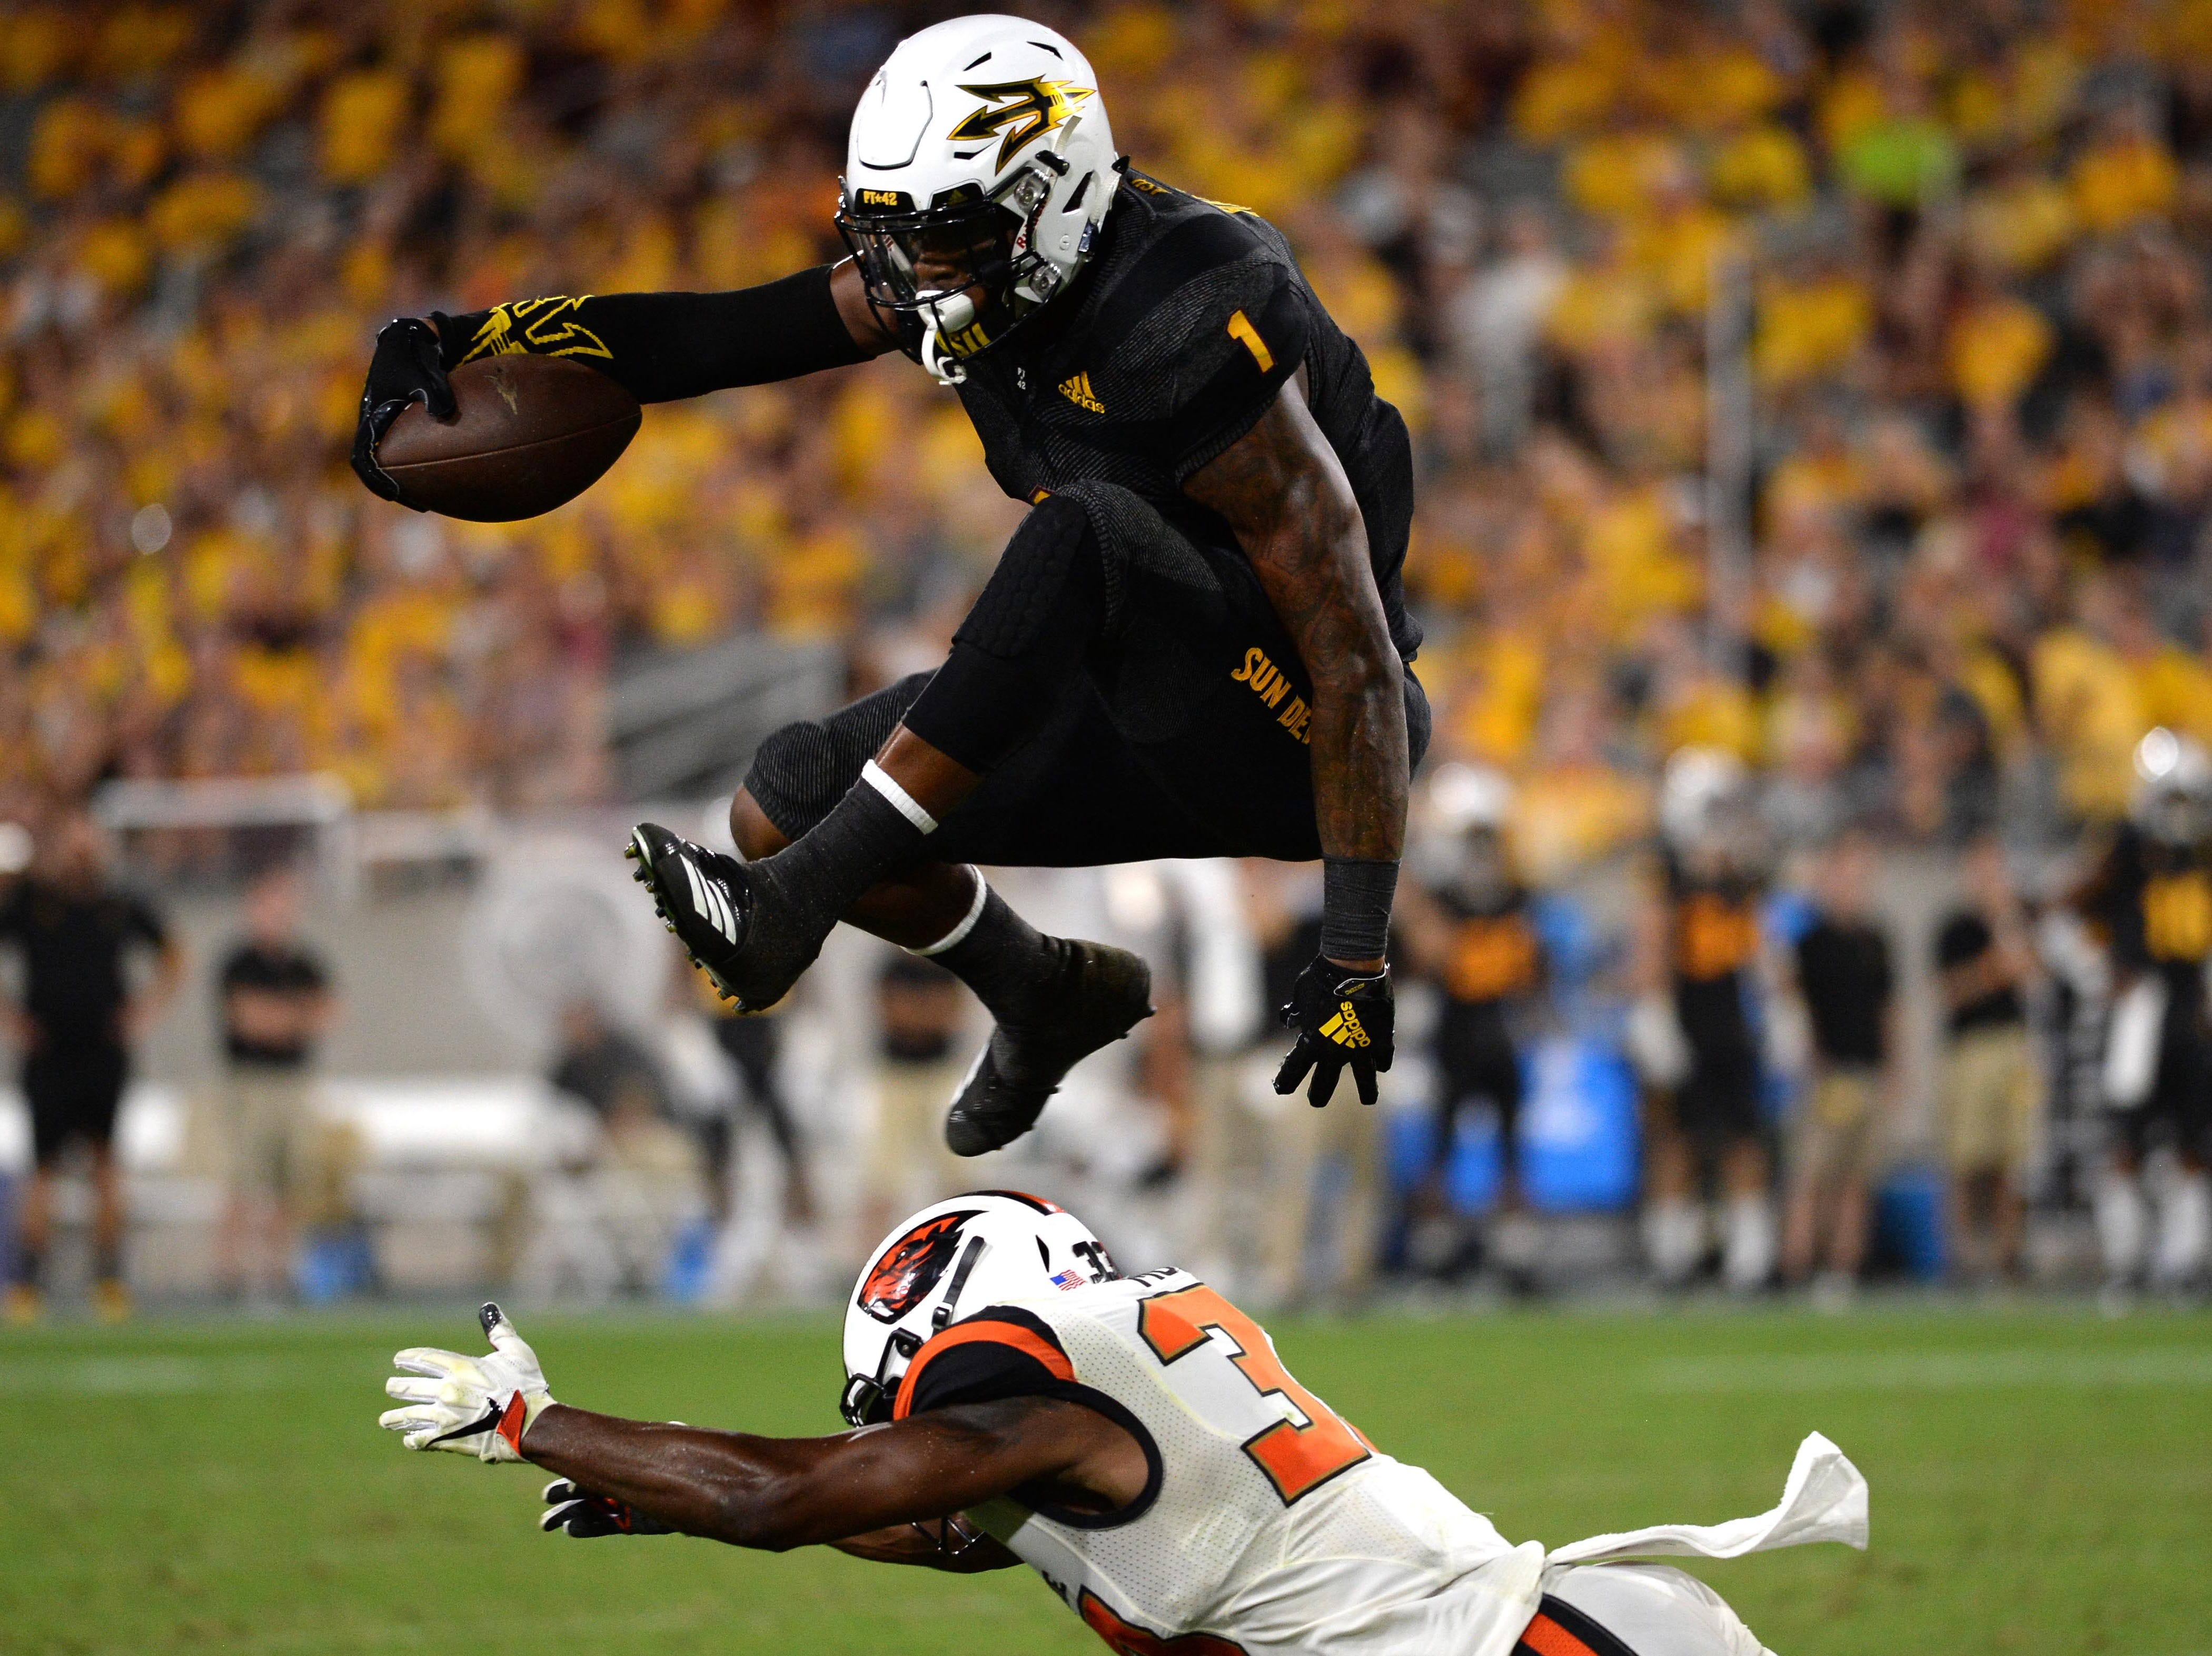 Arizona State Sun Devils wide receiver N'Keal Harry (1) is moving up NFL draft boards. Take a look at where he is projected to be picked in 2019 NFL mock drafts.